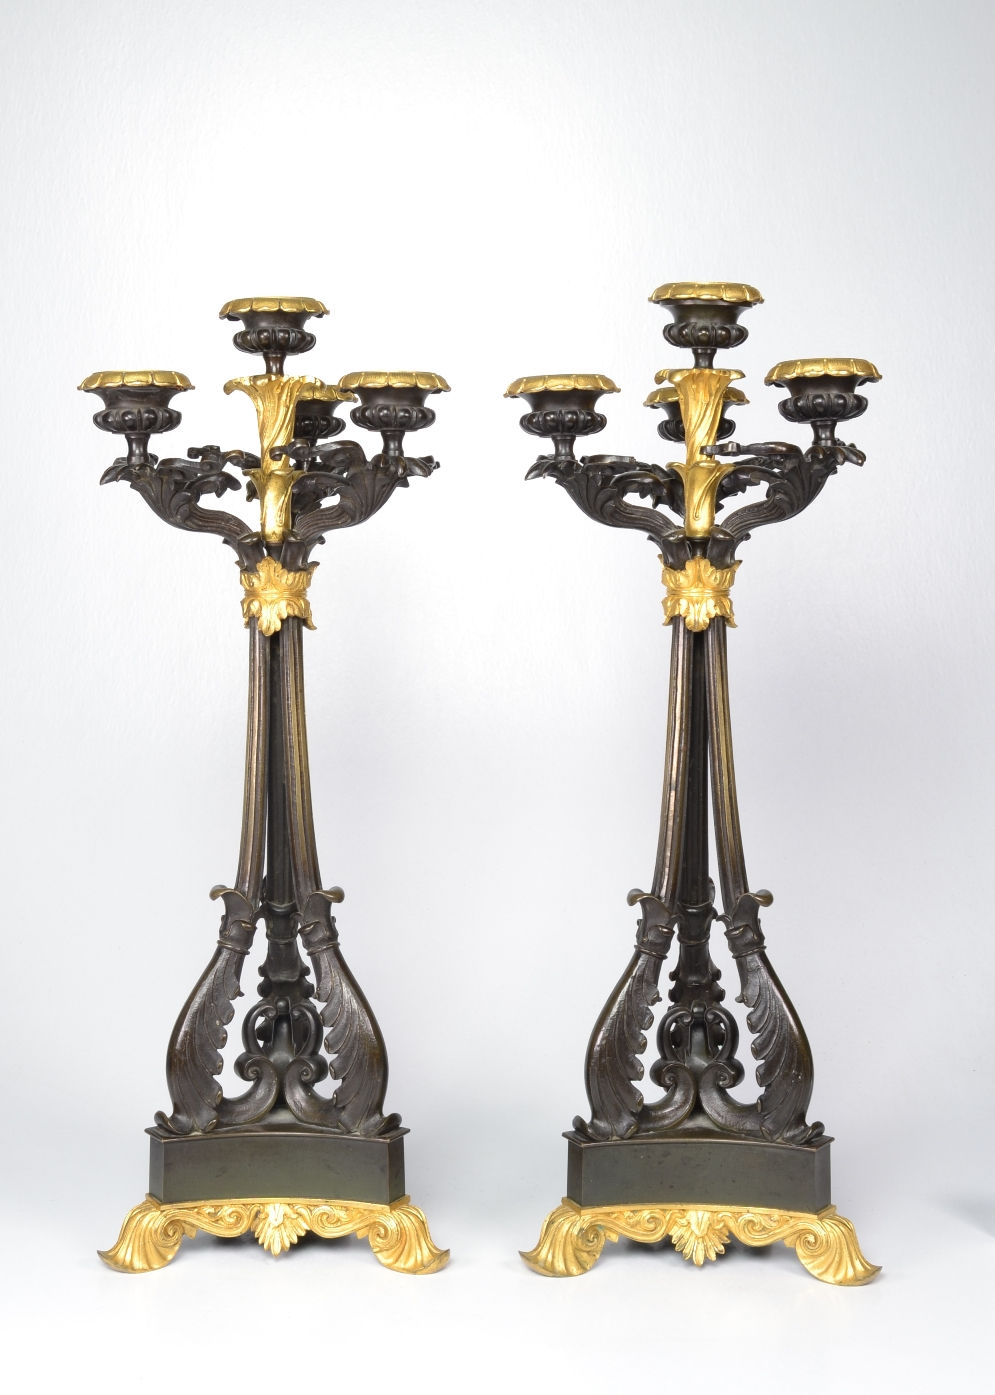 View 10: Pair of Louis-Philippe Bronze and Ormolu Candelabra, c. 1840